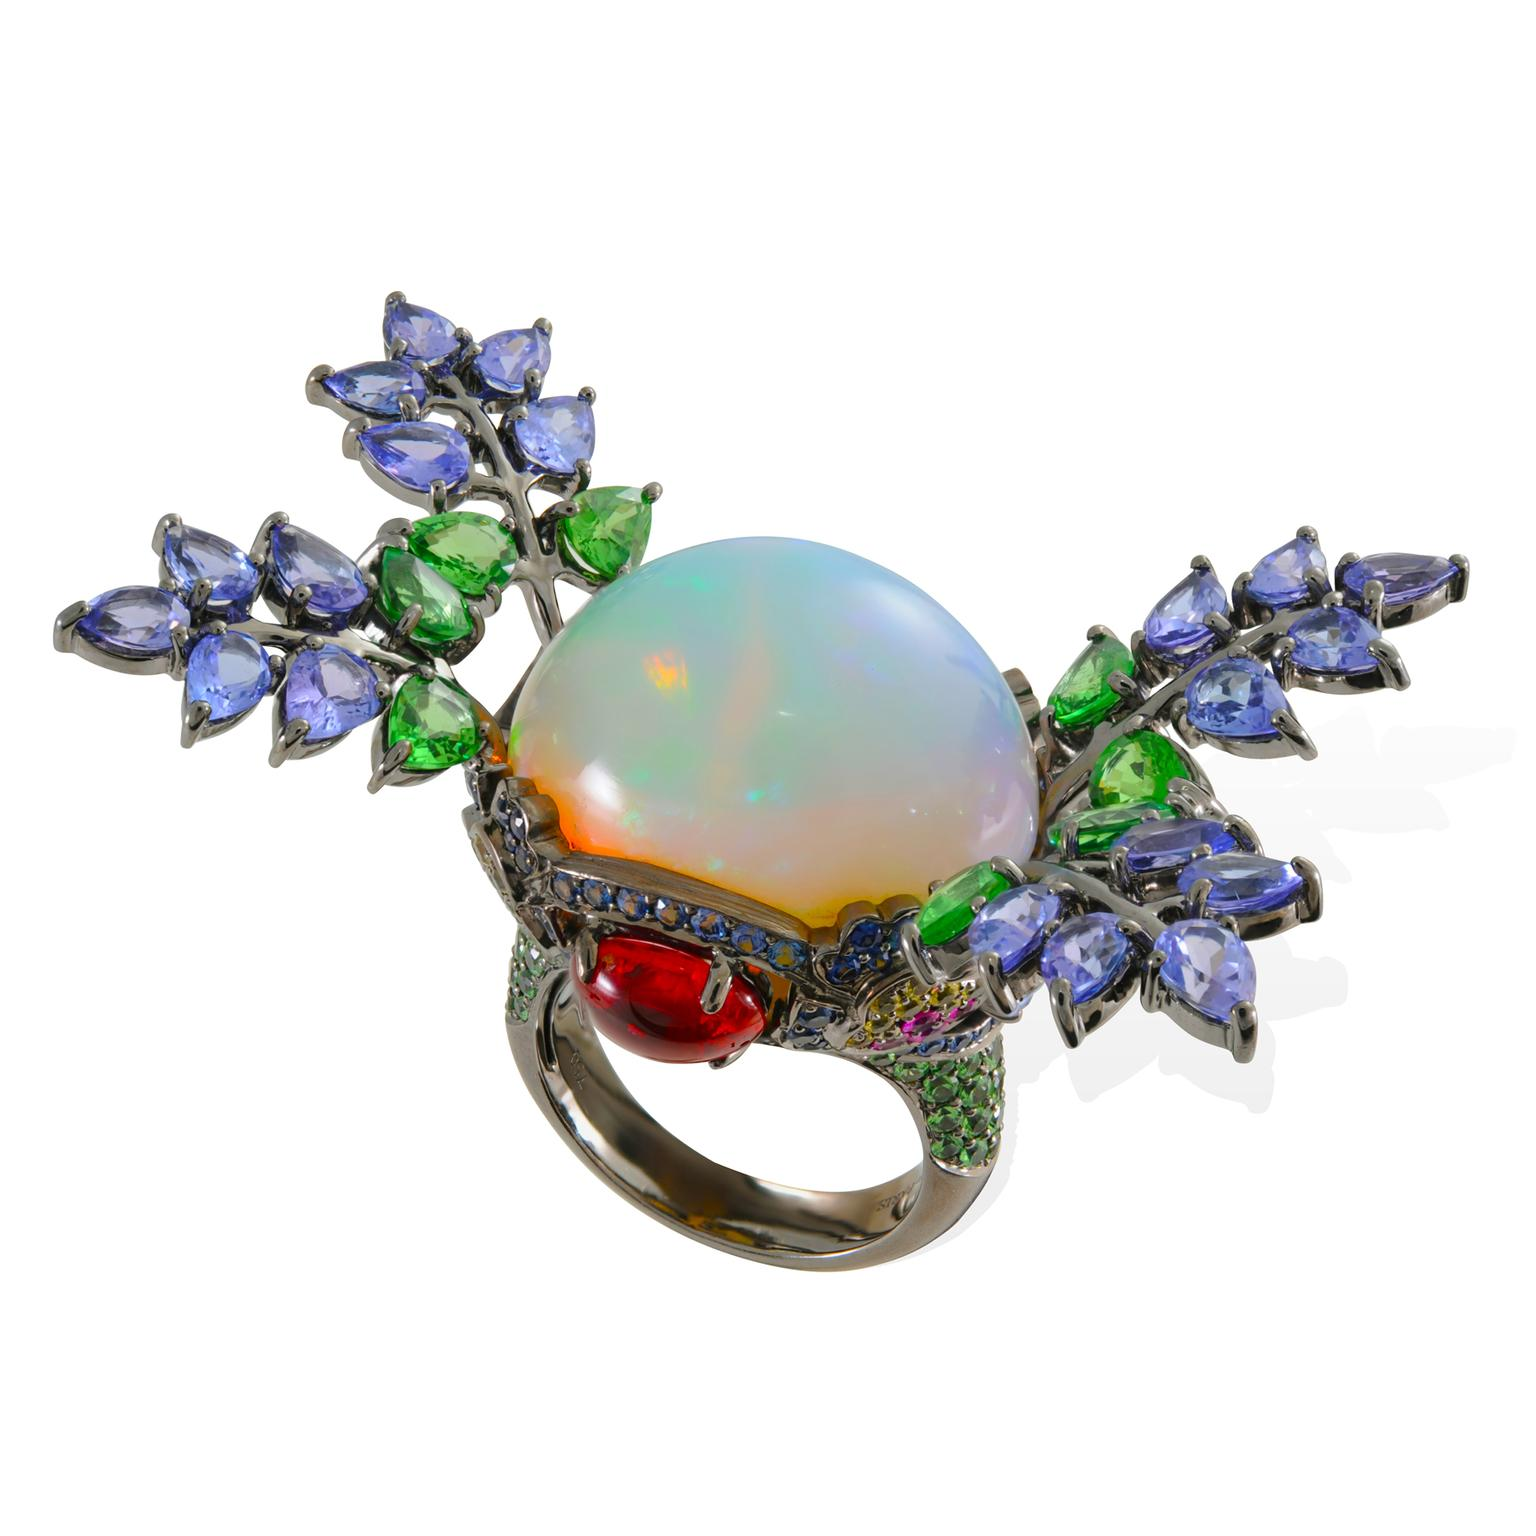 Lydia Courteille Topkapi opal ring